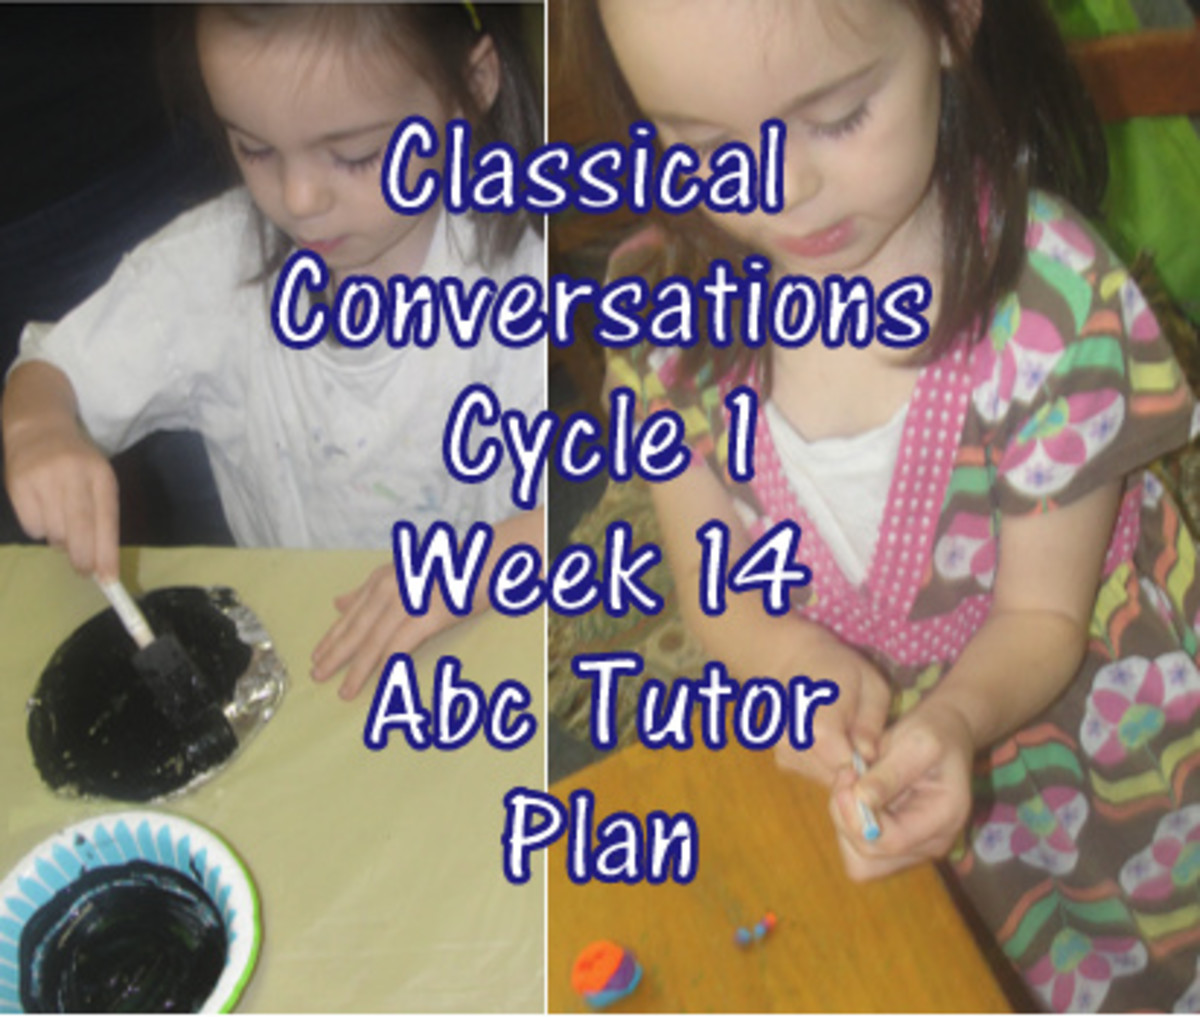 CC Cycle 1 Week 14 Plan for Abecedarian Tutors